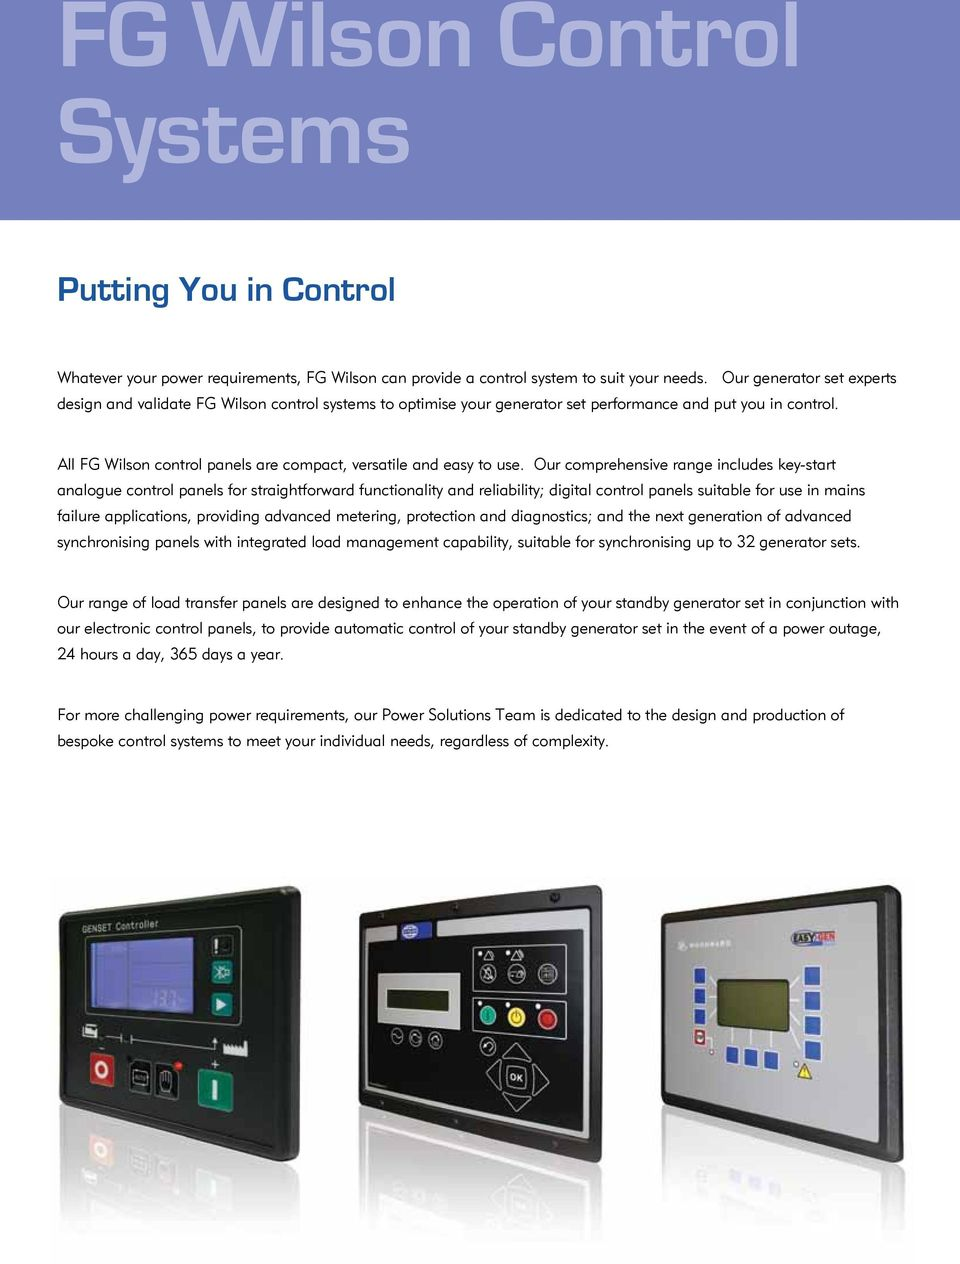 All FG Wilson control panels are compact, versatile and easy to use.